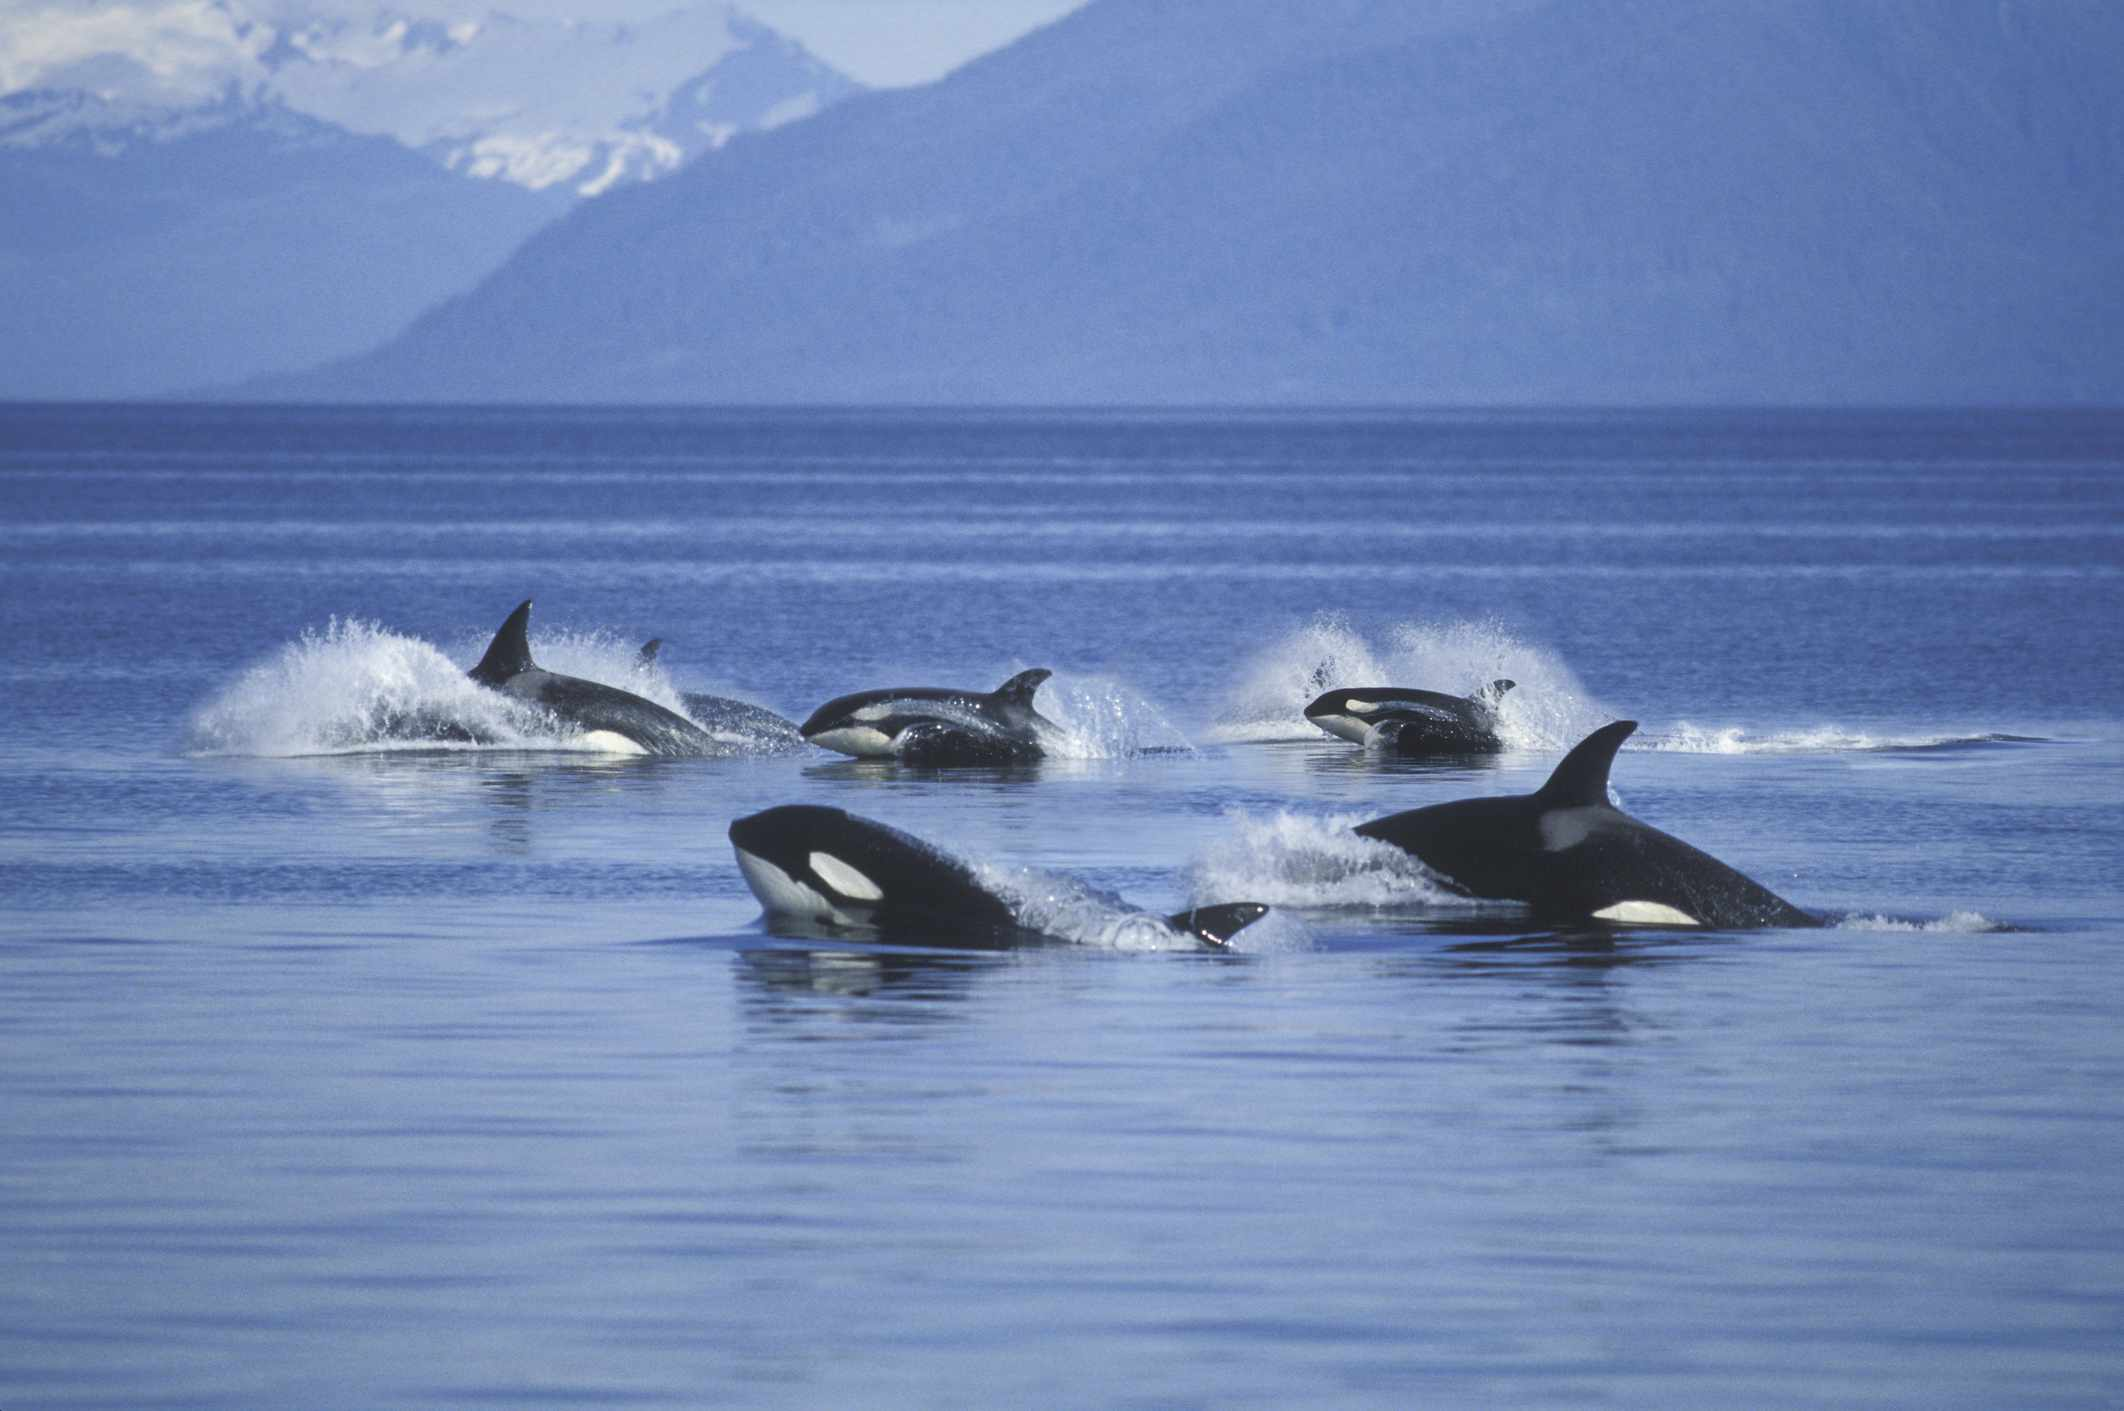 pod of orca whales jumping from ocean in front of mountains